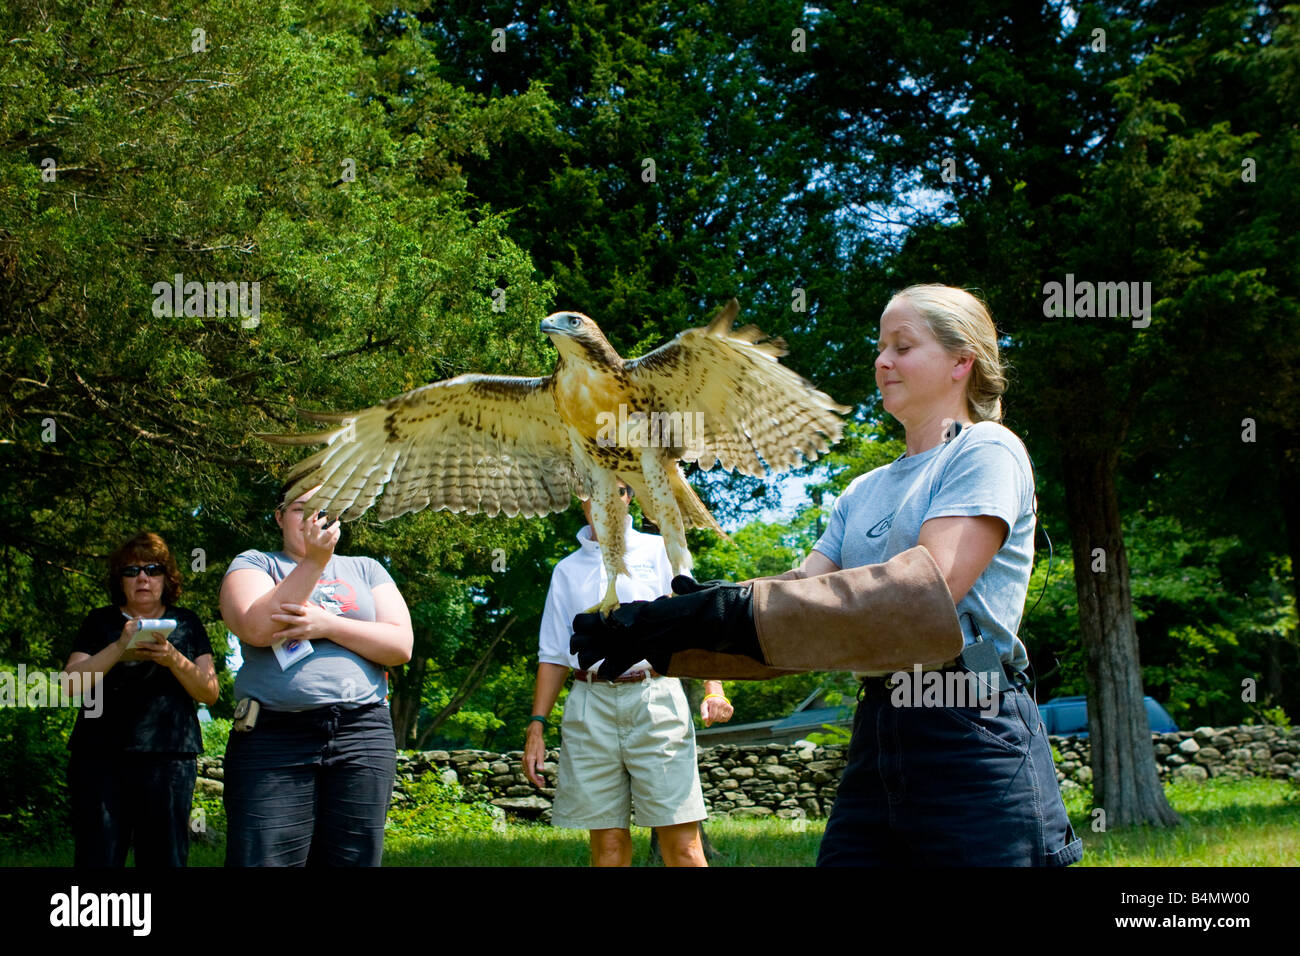 Environmentalists release a red Tailed hawk back into the wild after rehabilitating the injured bird - Stock Image